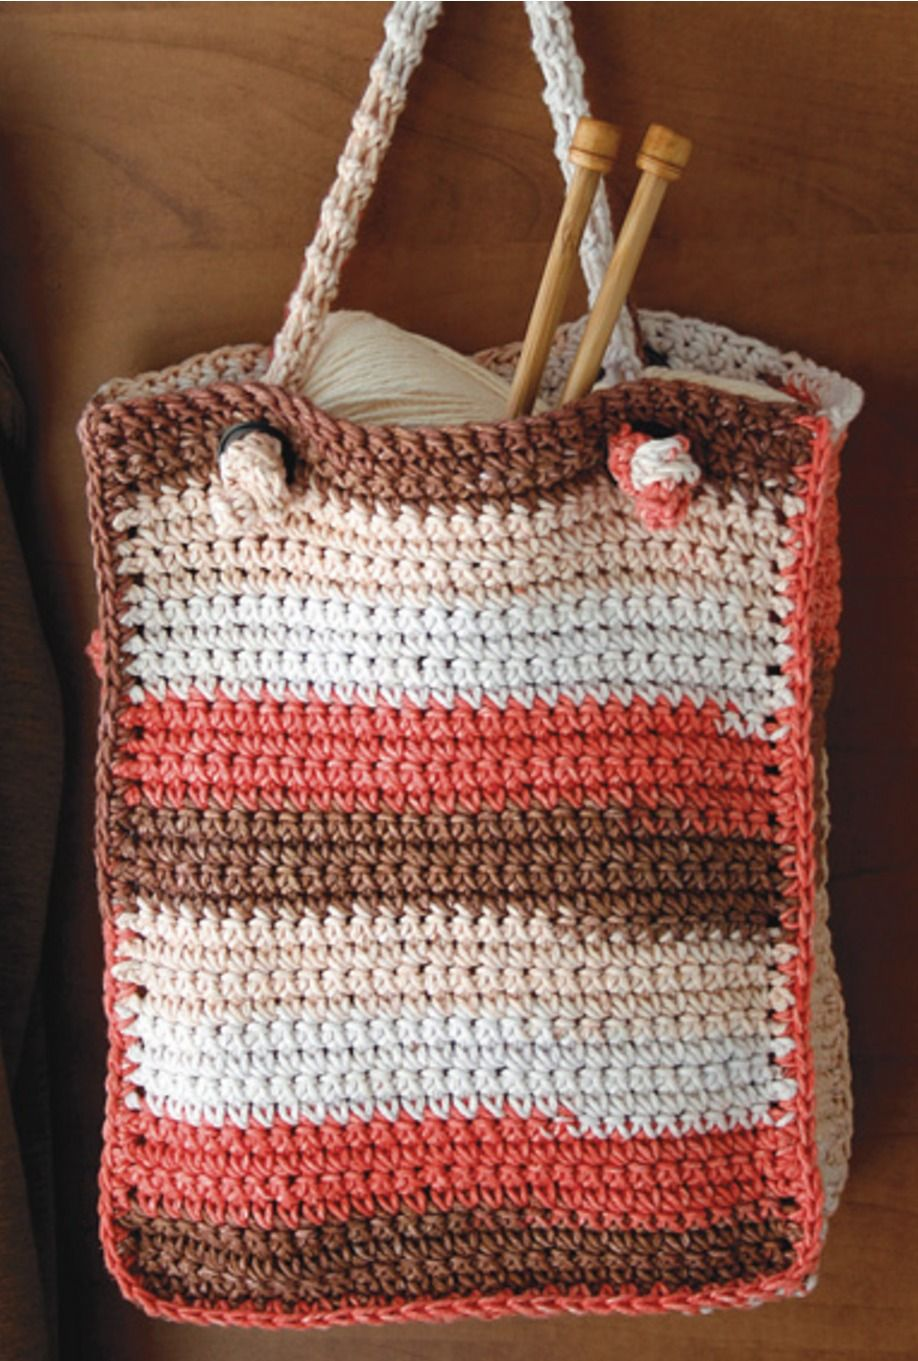 Free Crochet Pattern   Crocheted Tote with Knotted Handle   Crochet ...